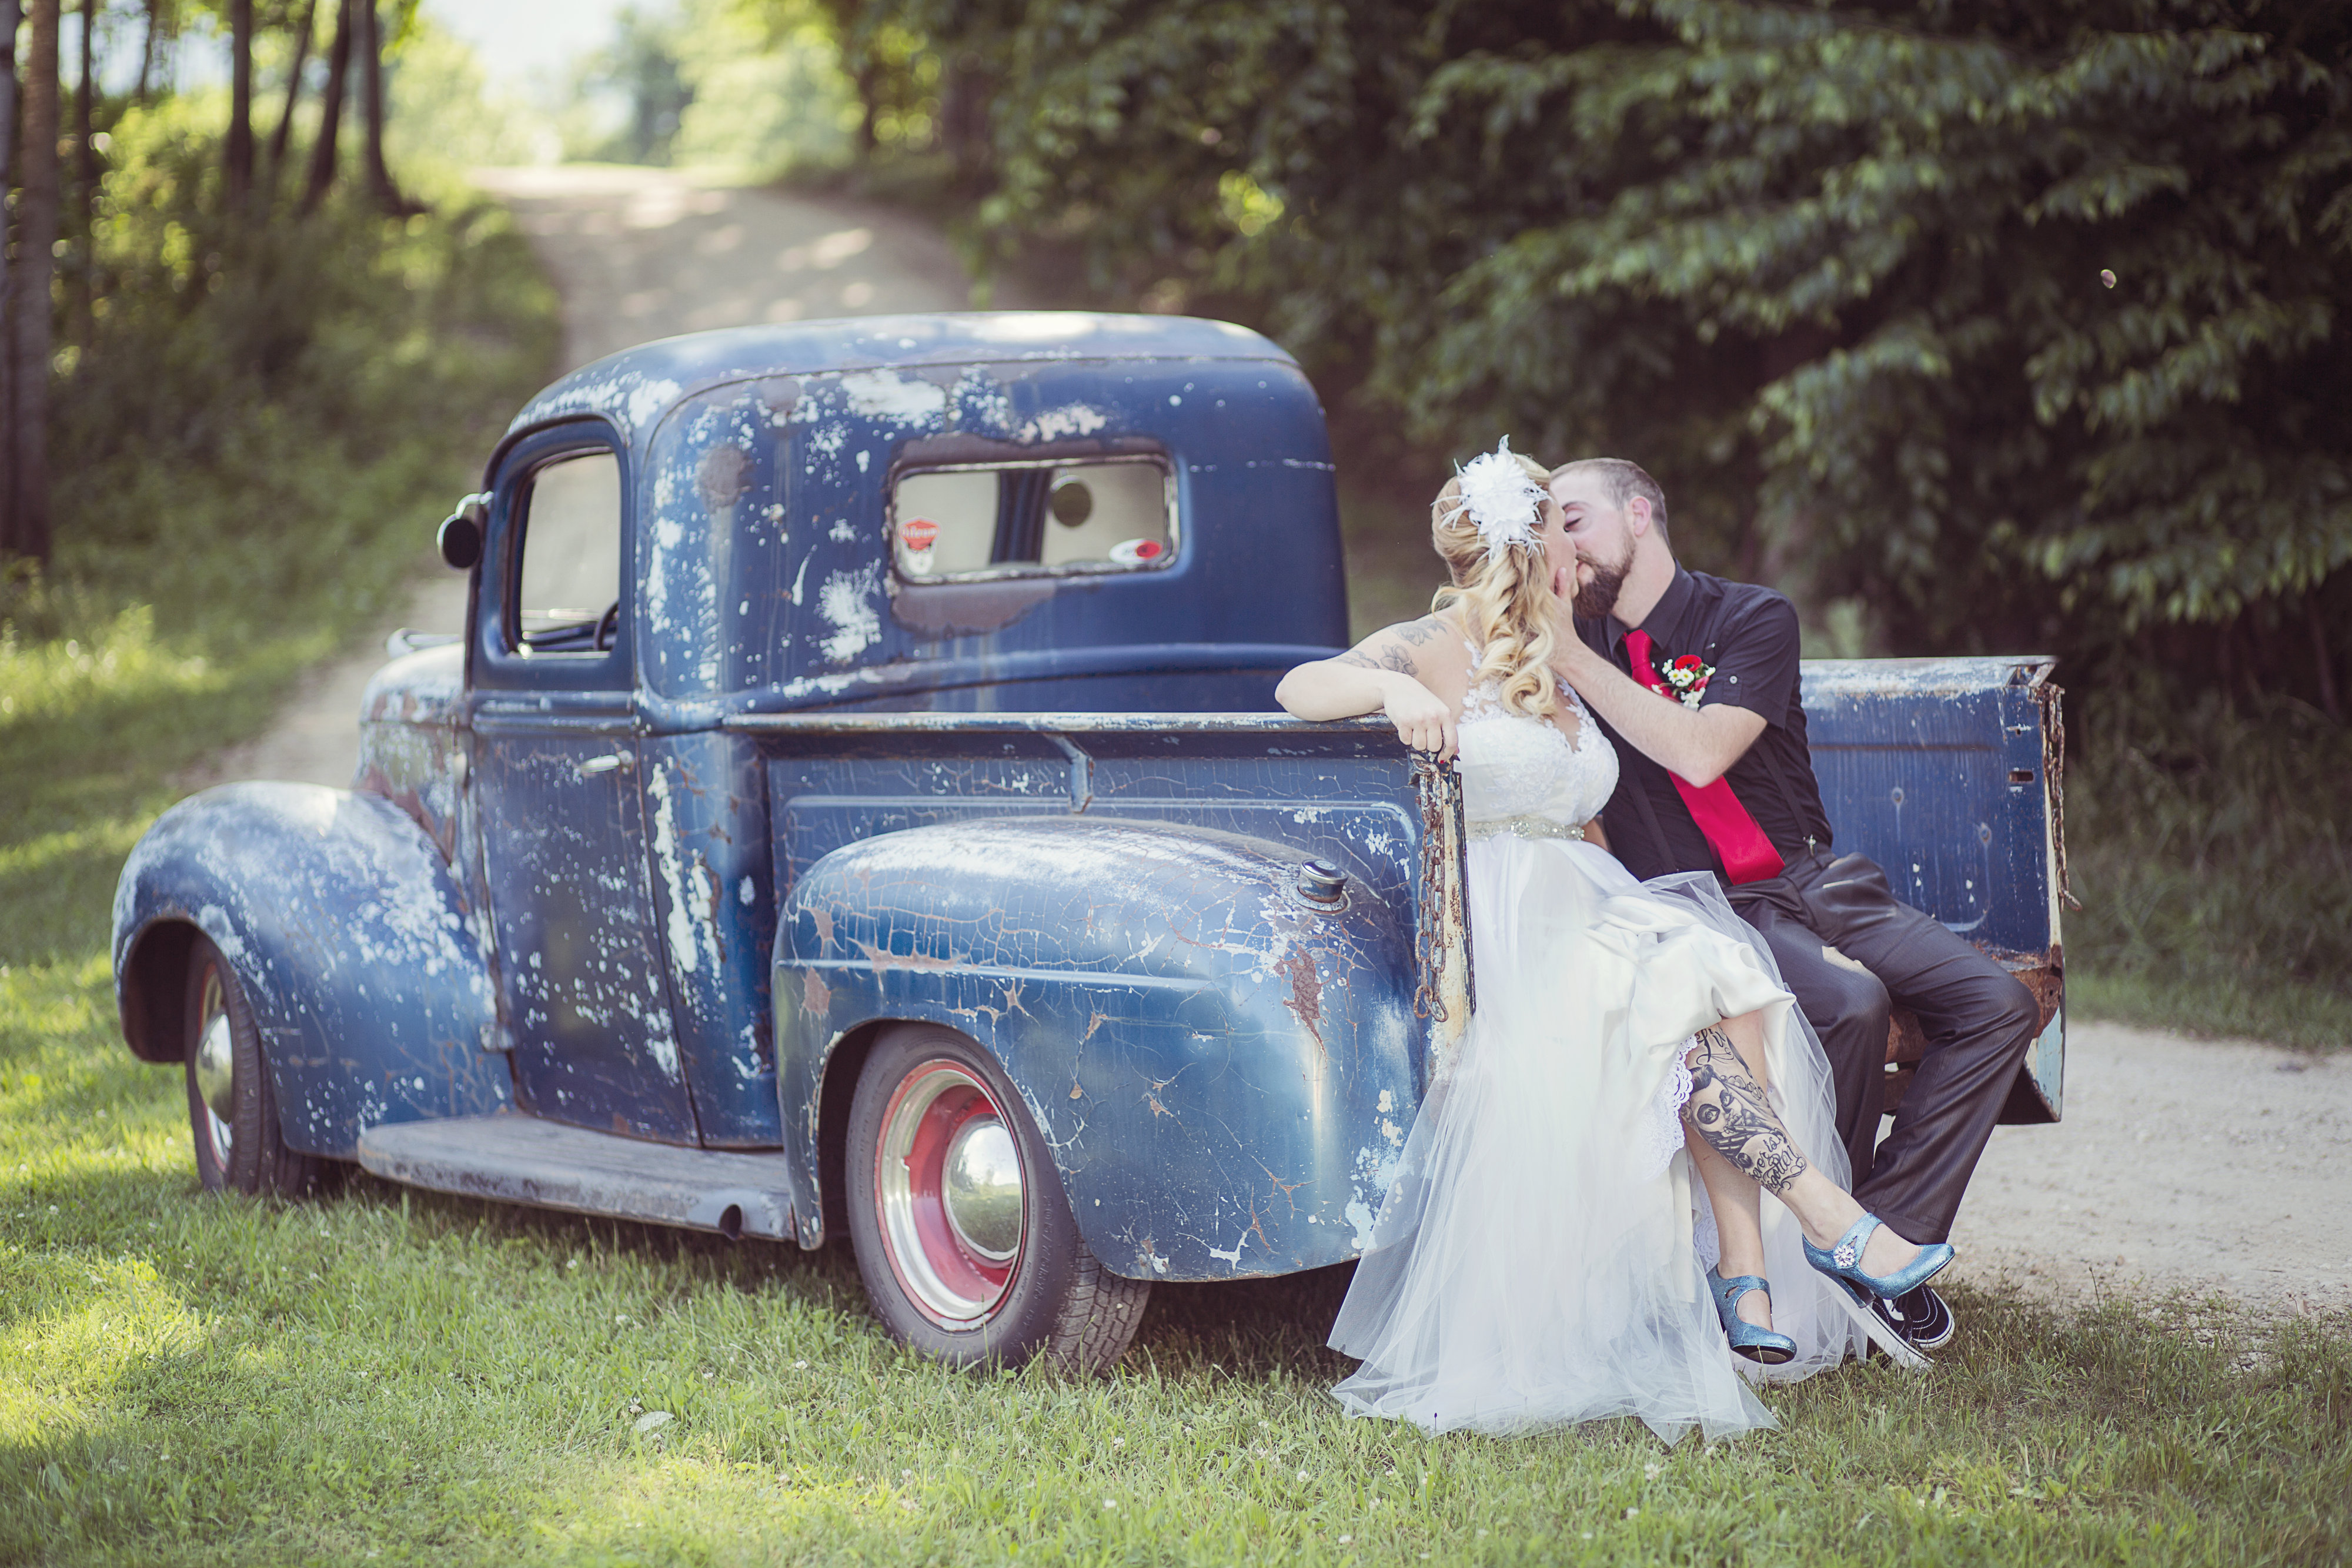 View More: http://creartsyphotography.pass.us/erin-foley-wedding-edits